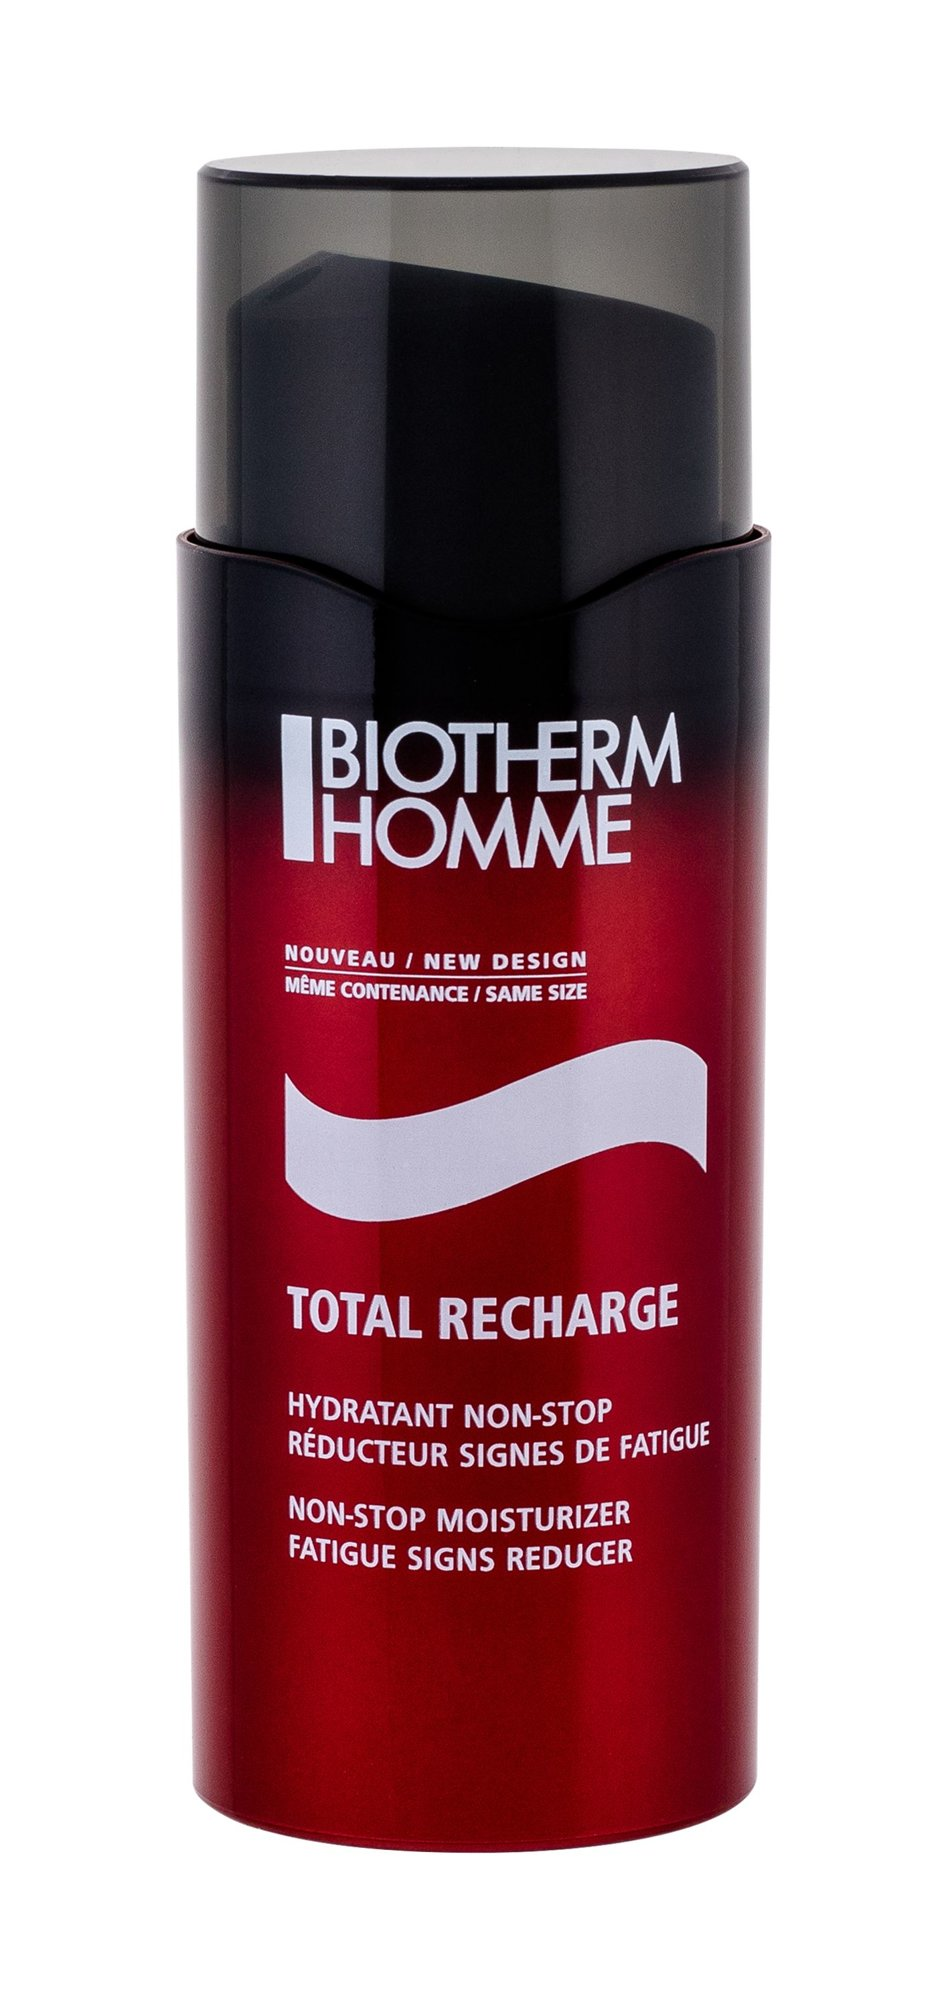 Biotherm Homme Total Recharge Day Cream 50ml  Non-stop Moisturizer